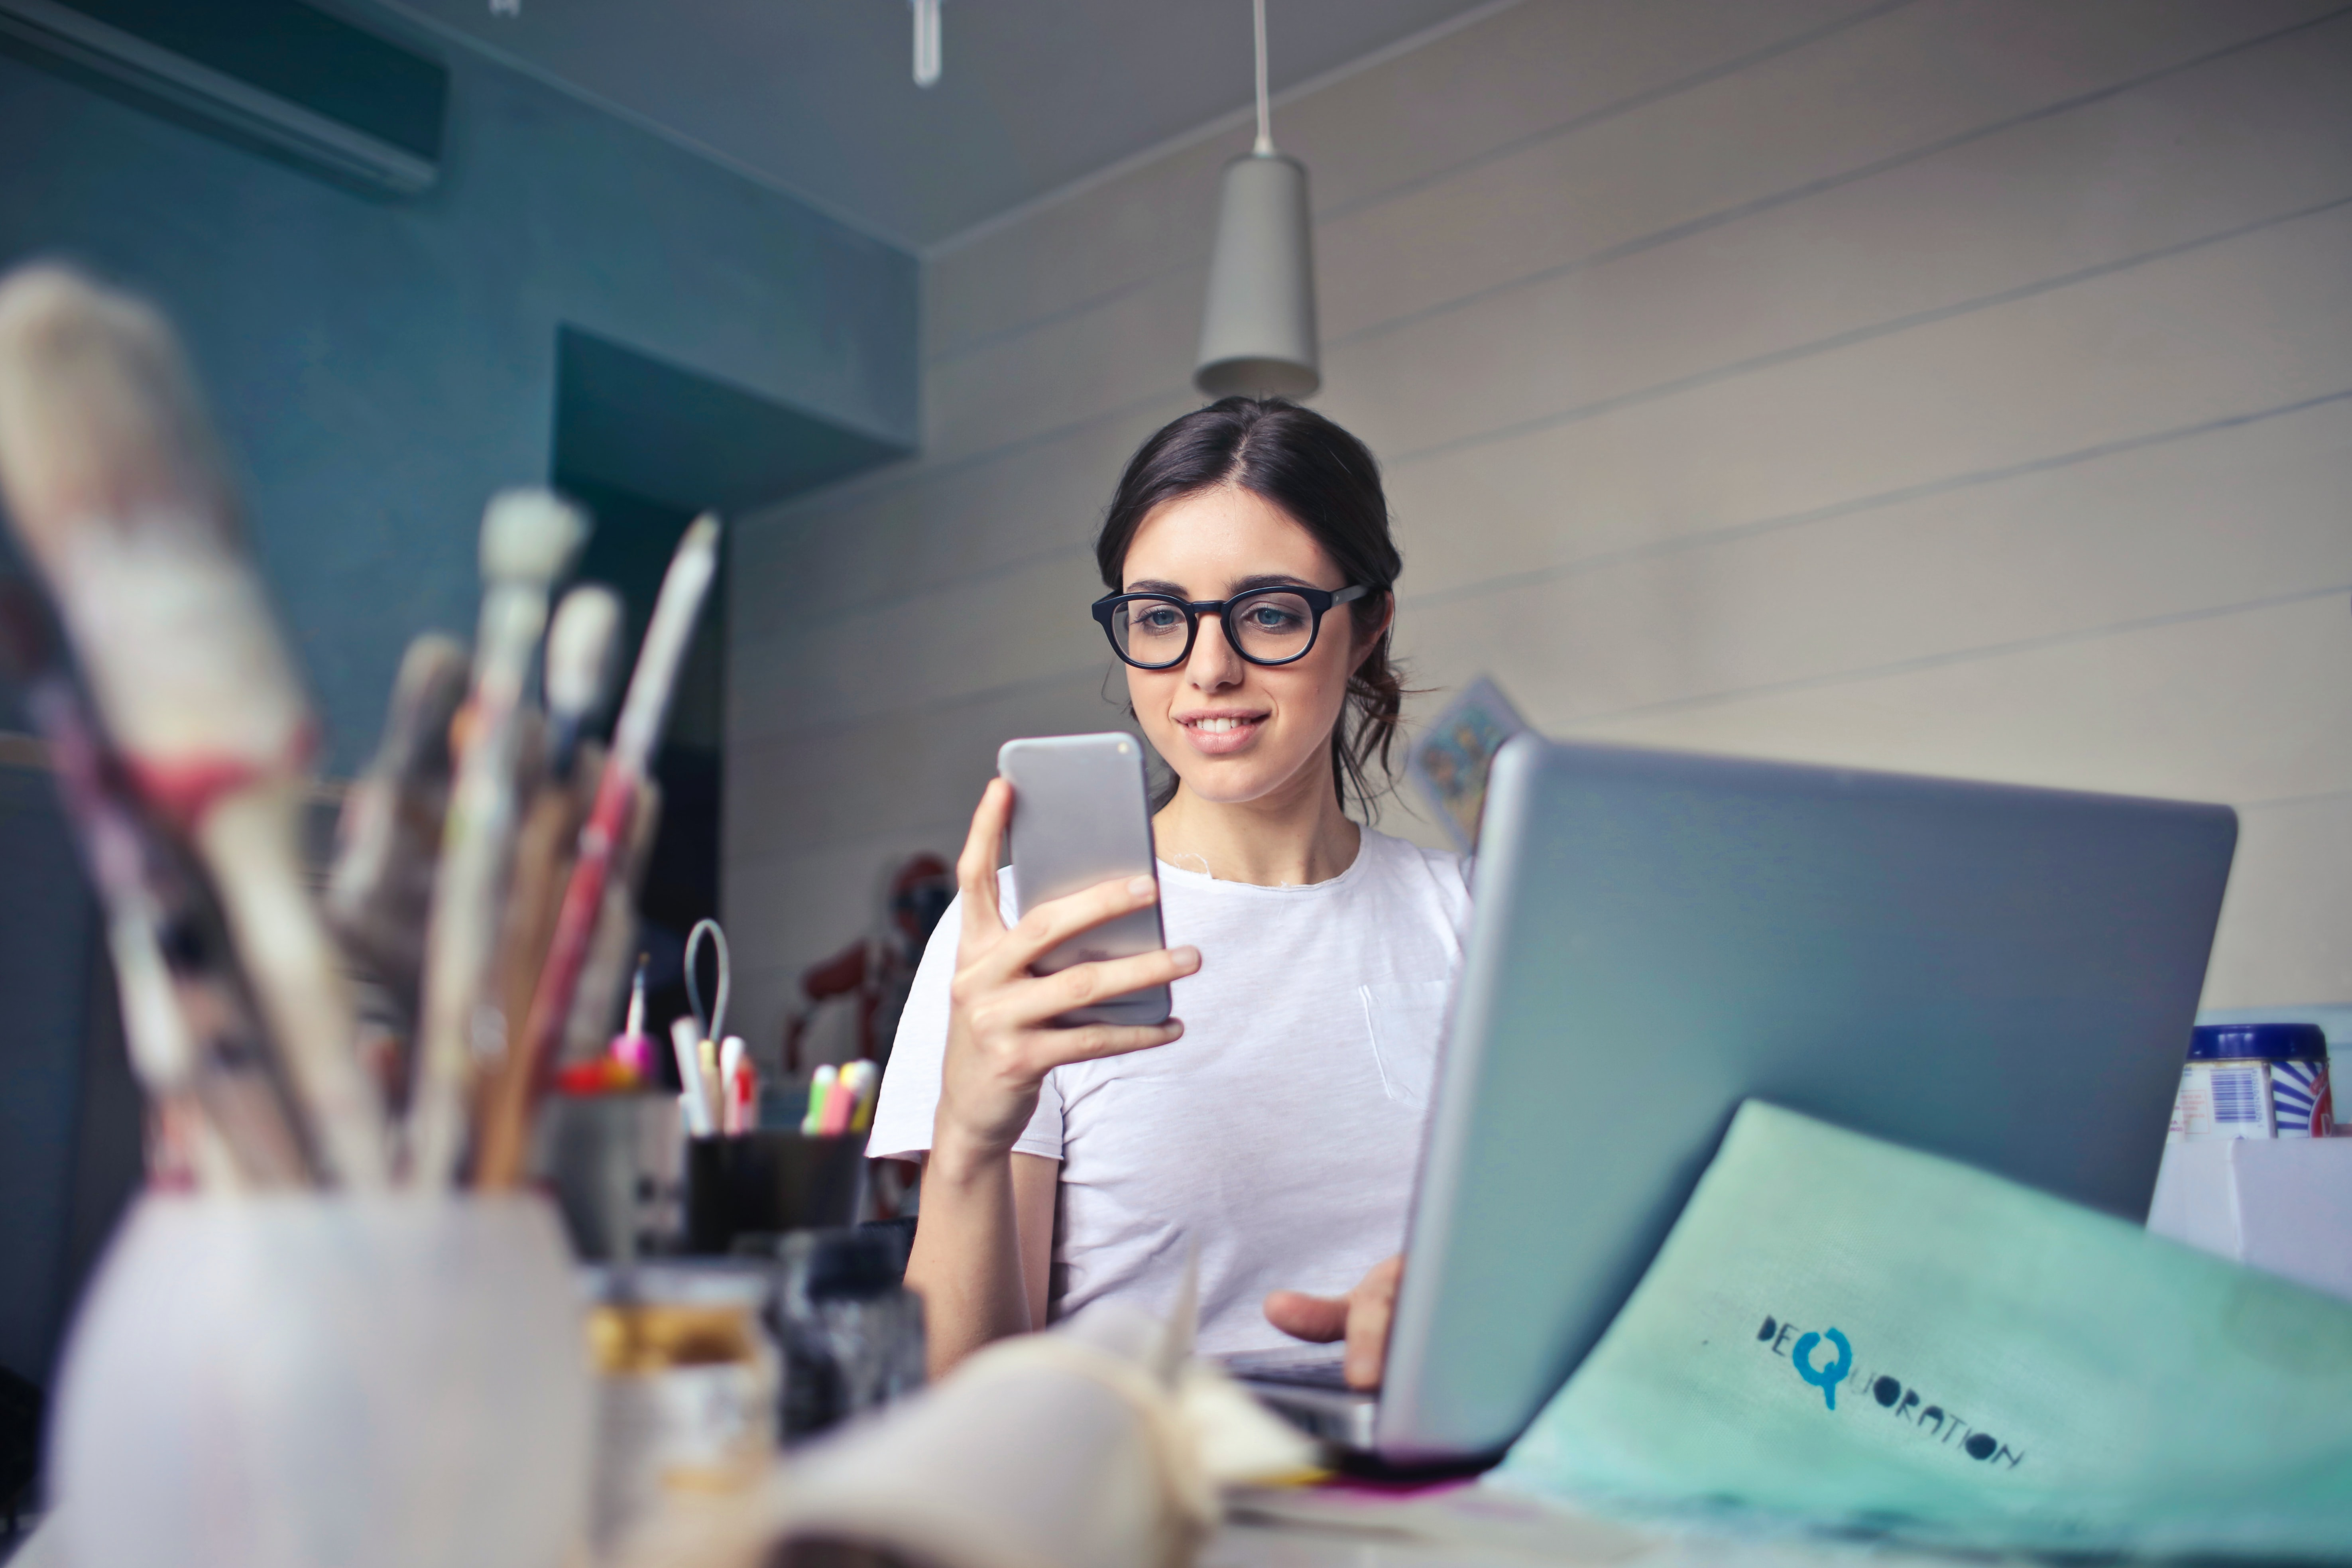 A young woman wearing glasses sitting at a laptop holding a mobile phone in front of her, with a pot of paint brushes out of focus in the corner of the foreground